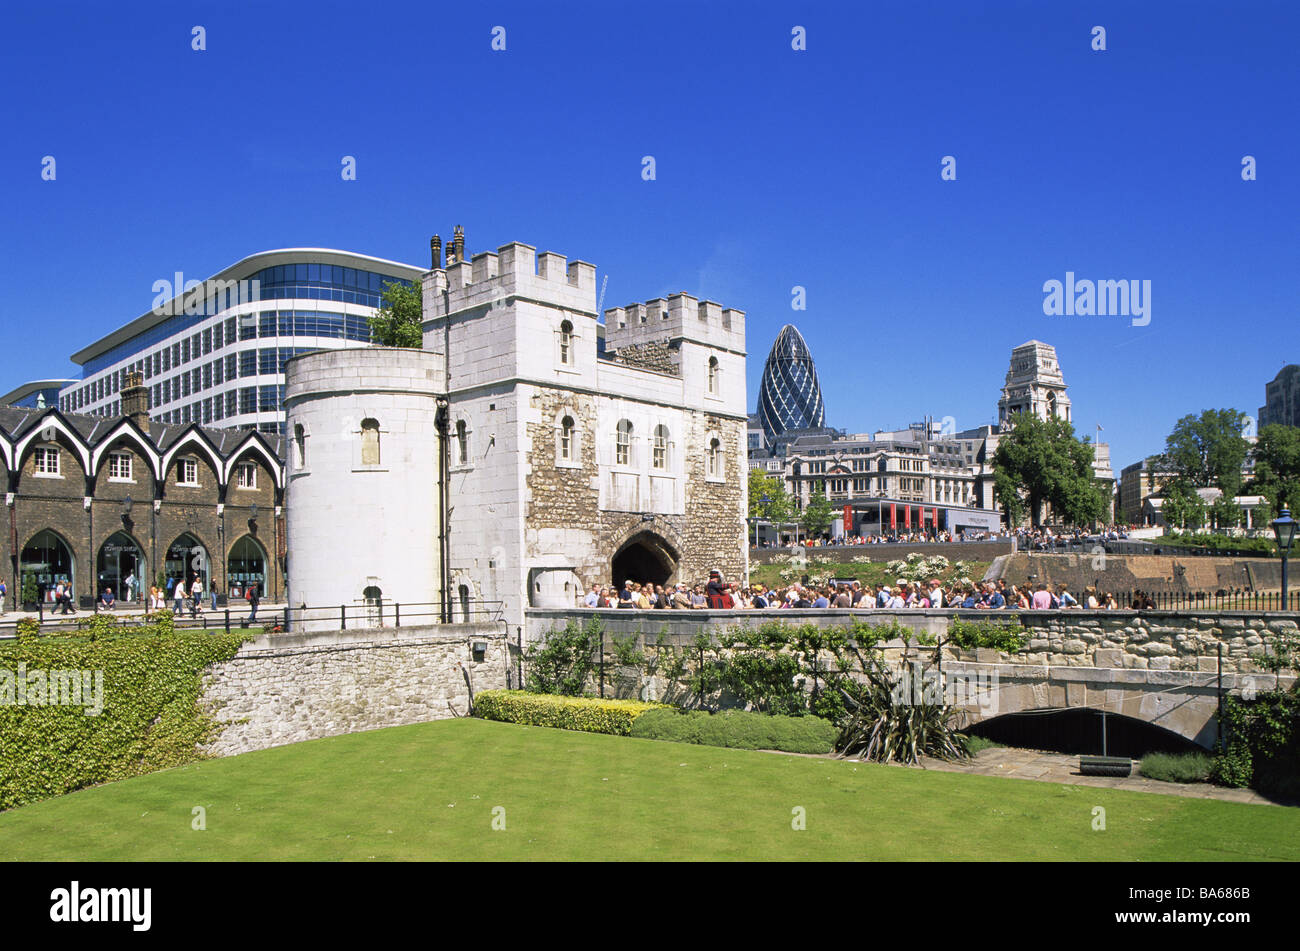 Great Britain London tower of London office buildings facades detail England capital archway gate-construction high - Stock Image